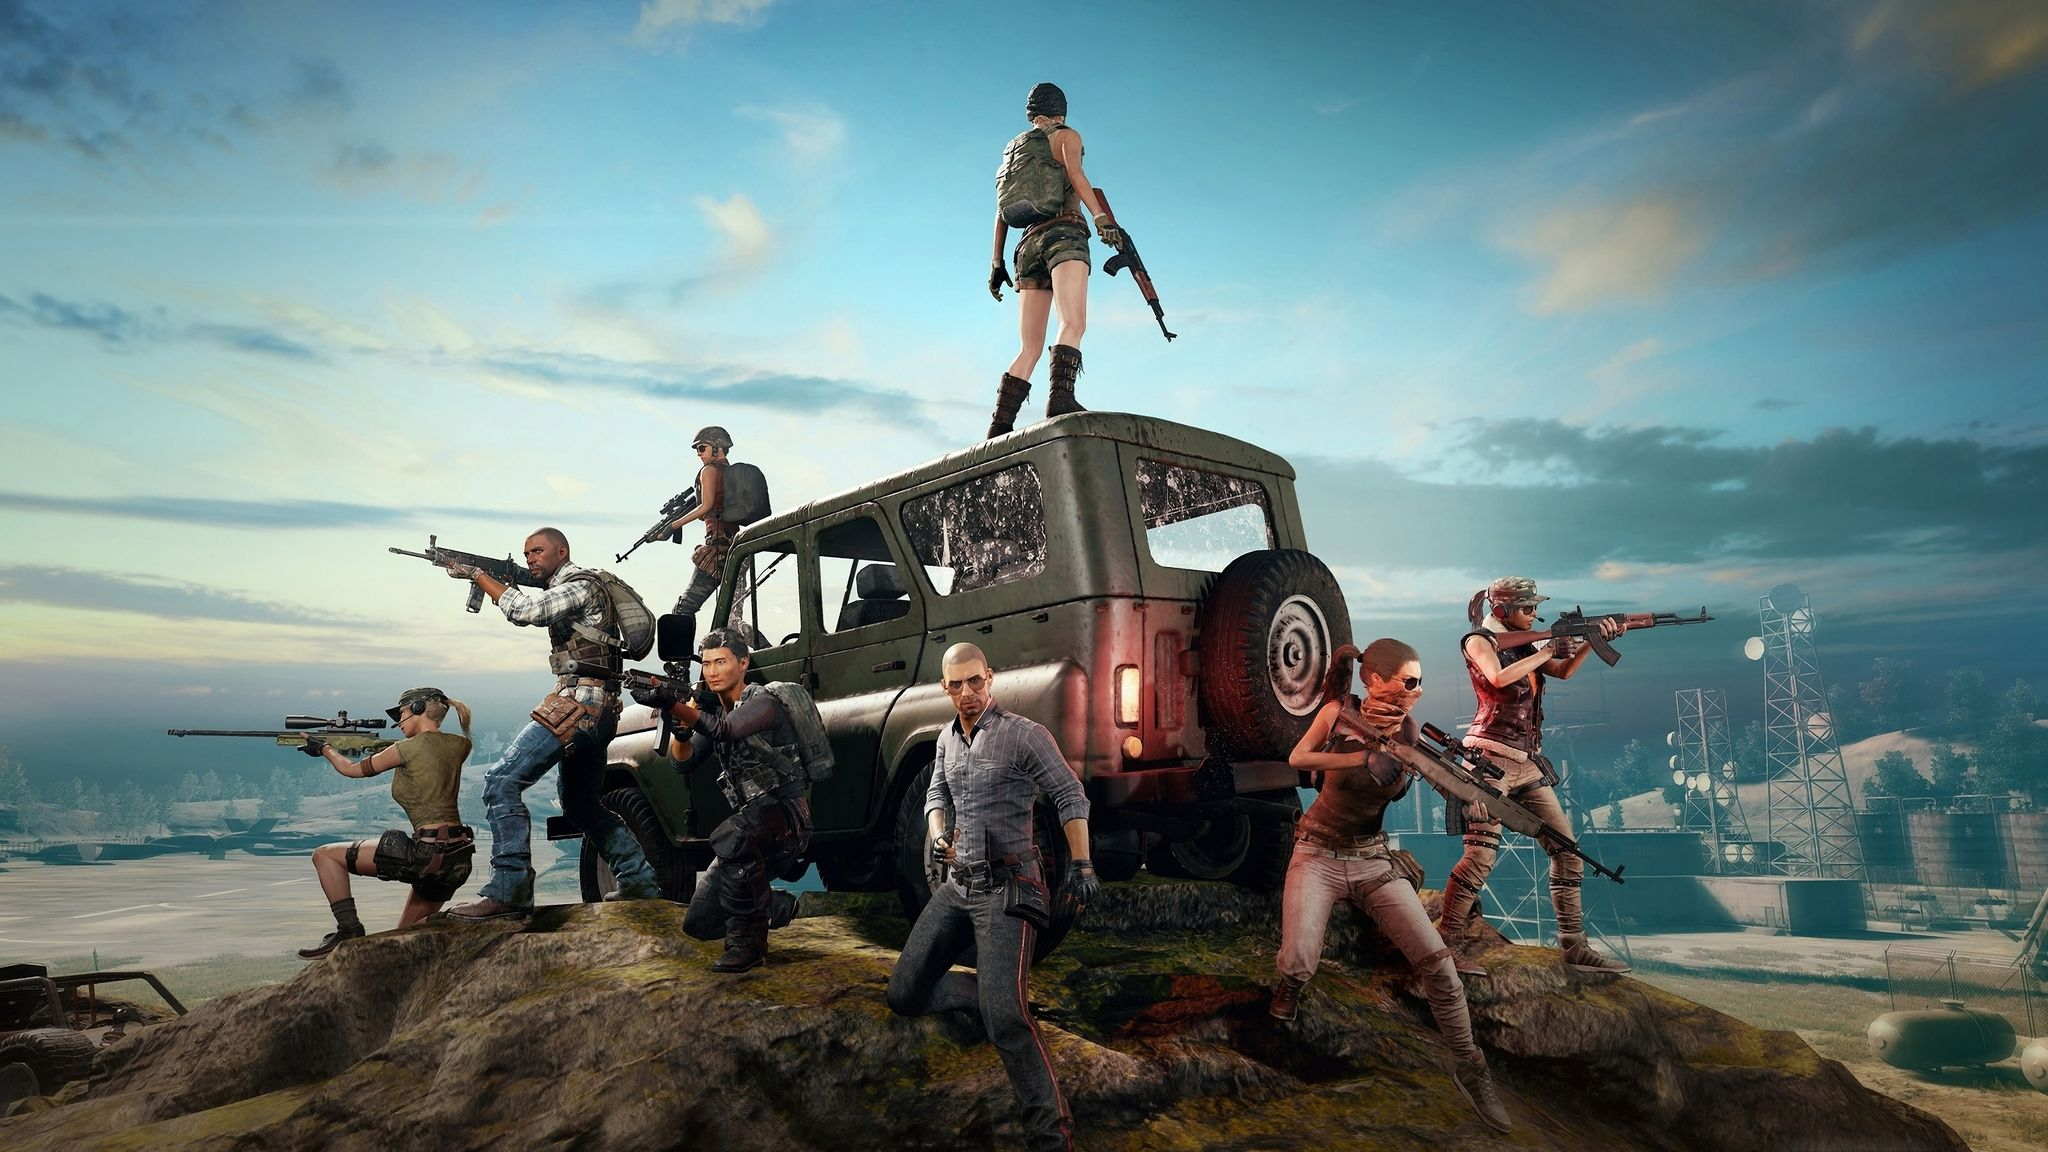 Image result for PUBG 4k wallpaper